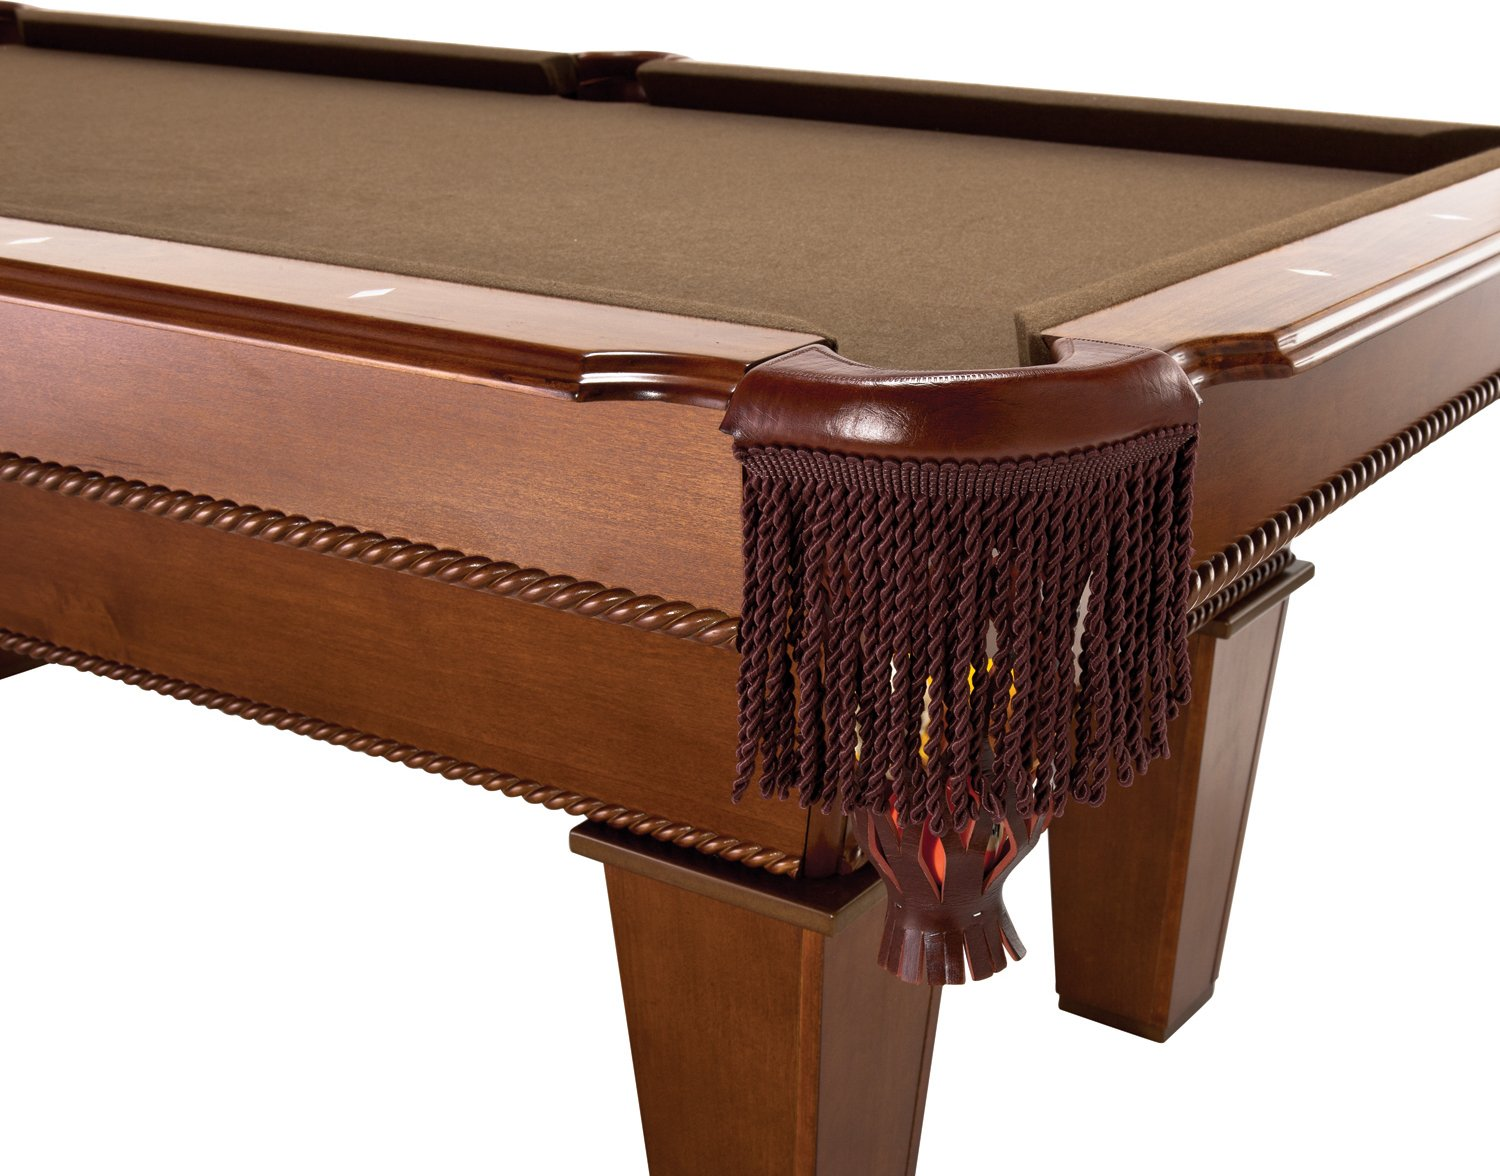 Good Amazon.com : Fat Cat Frisco II 7.5 Foot Billiard/Pool Game Table : Pool  Tables : Sports U0026 Outdoors